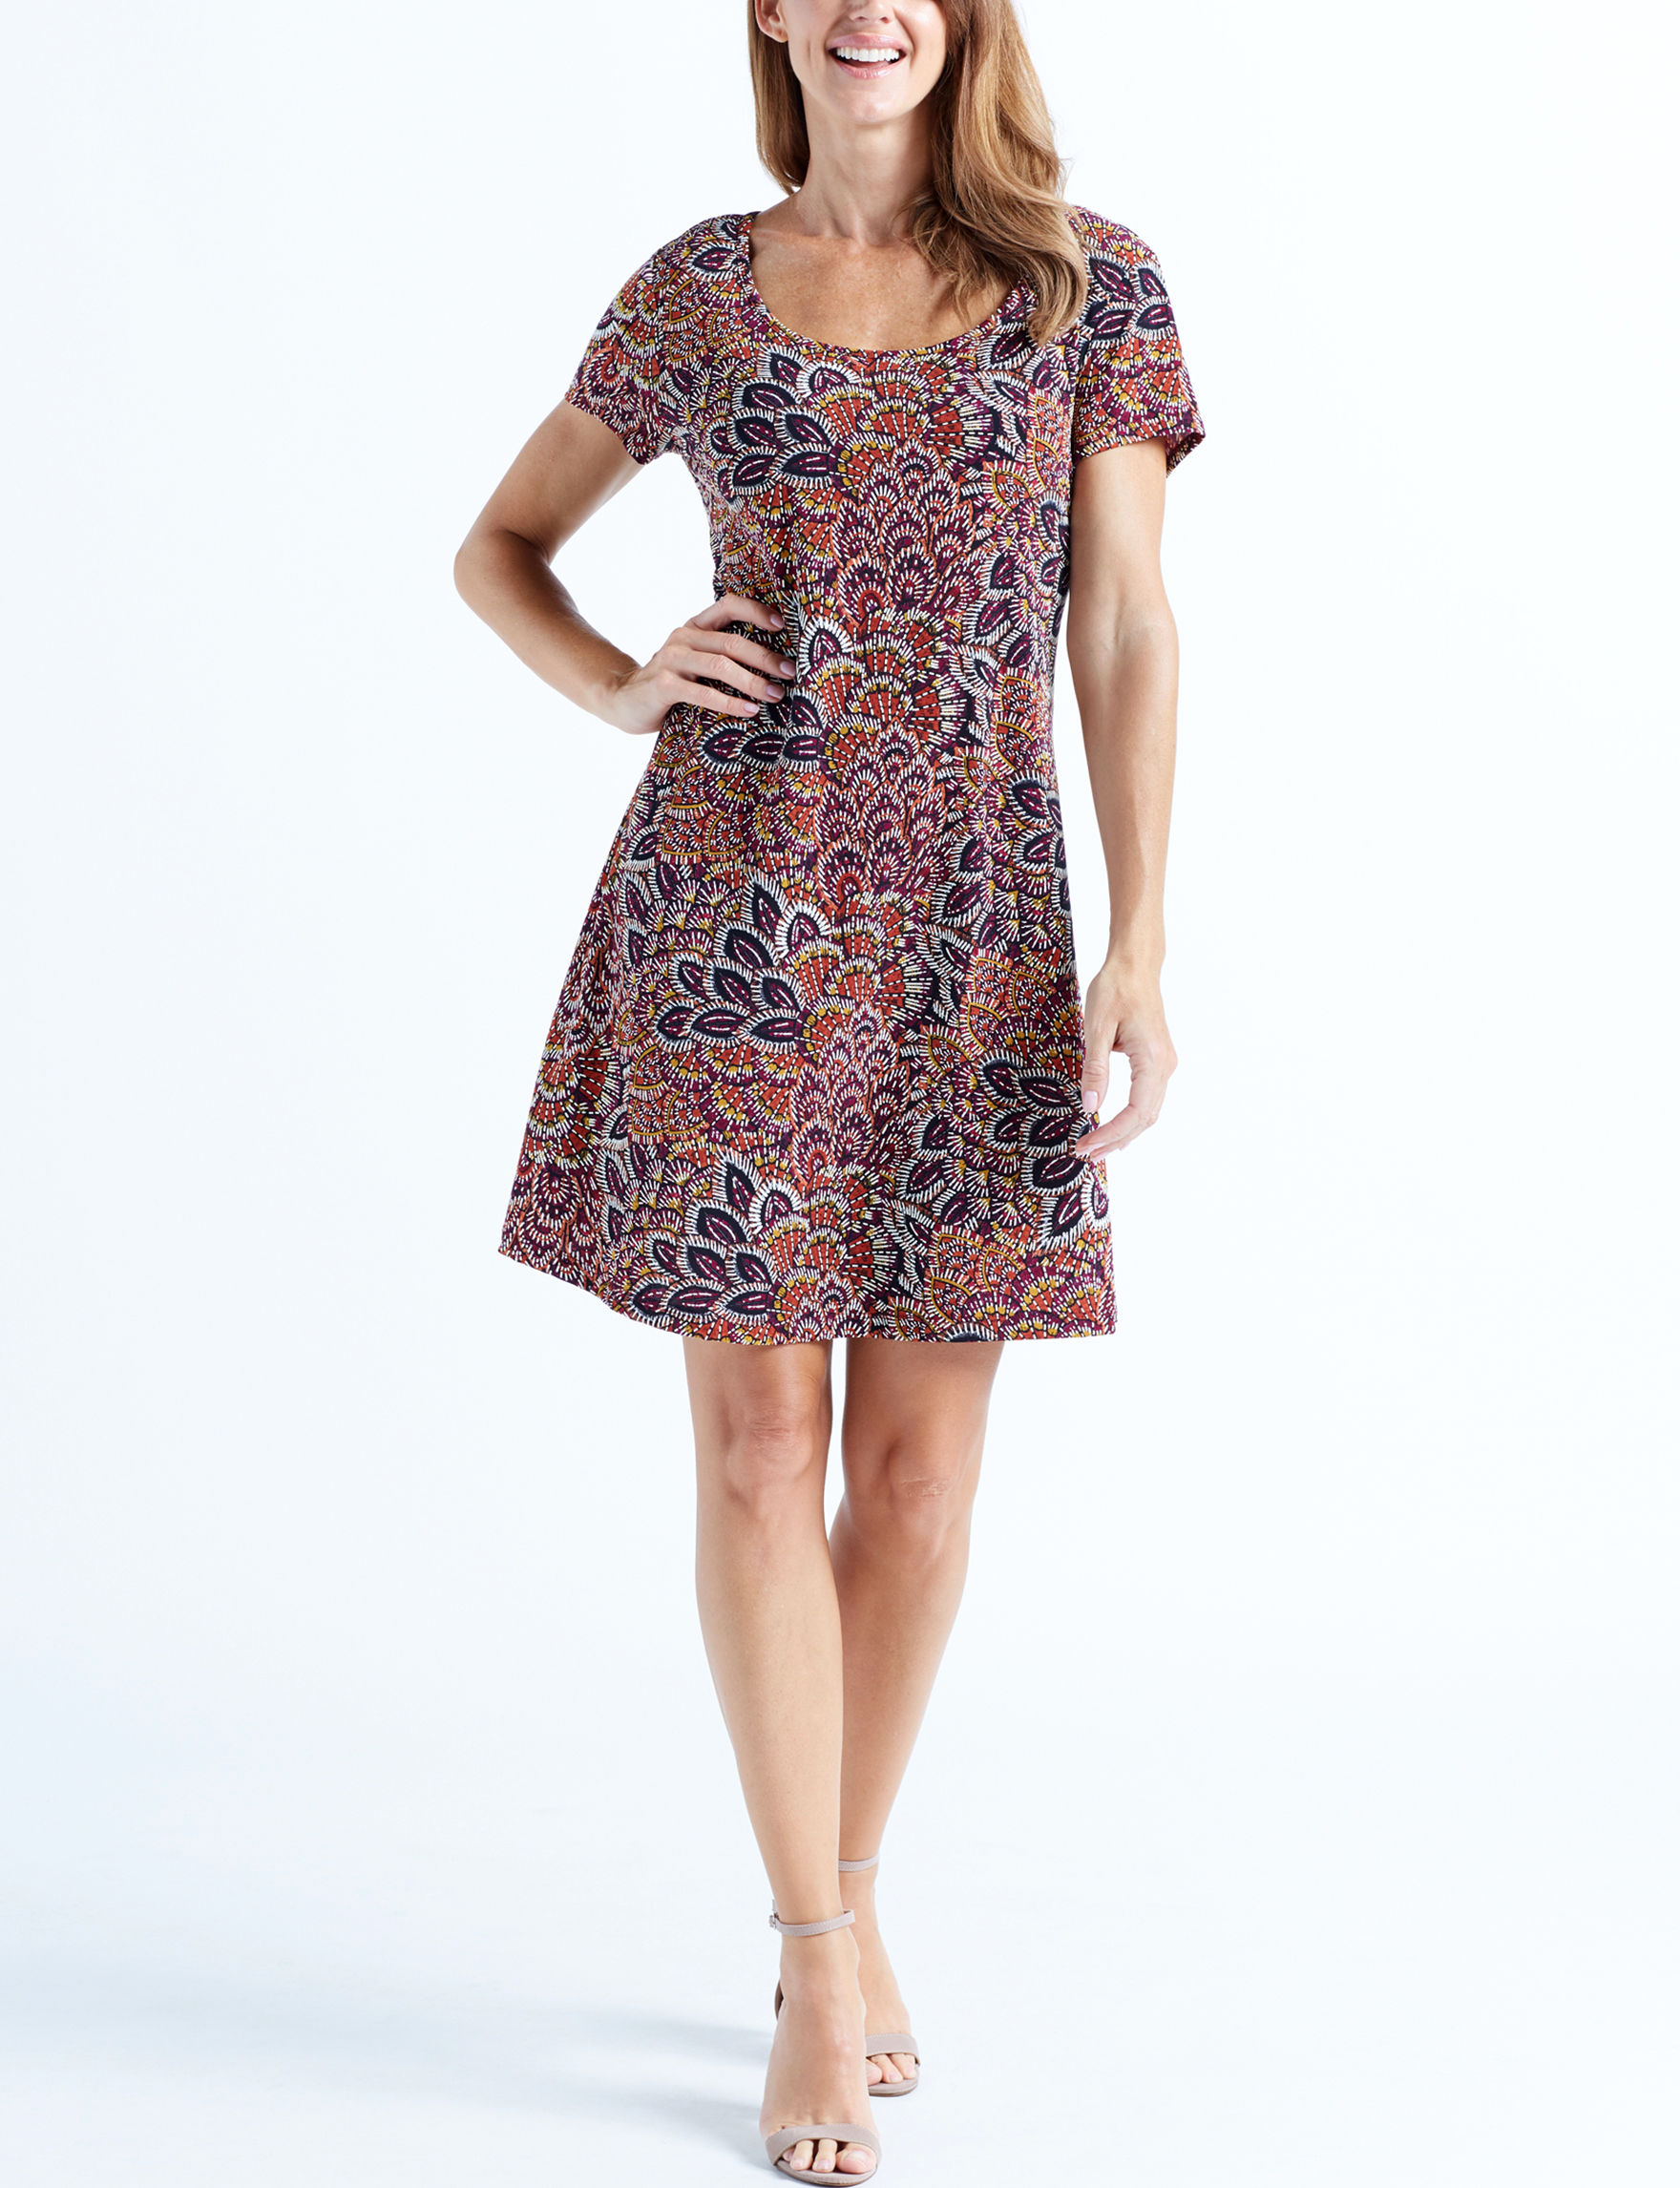 Ronni Nicole Plum Everyday & Casual Shift Dresses